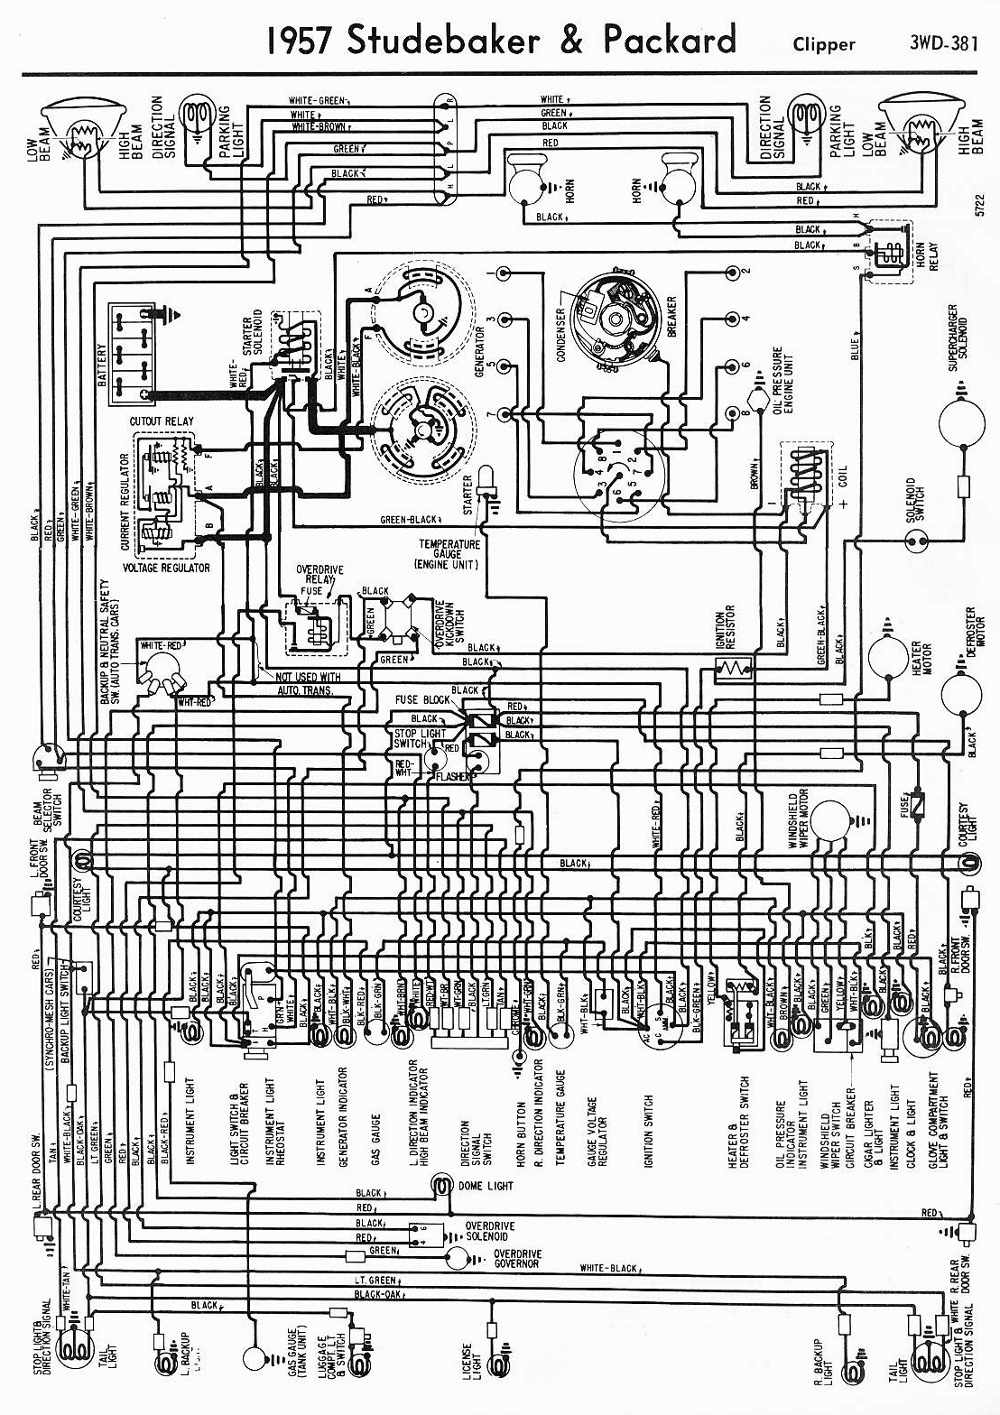 Walljack Wiring Wiring Diagram